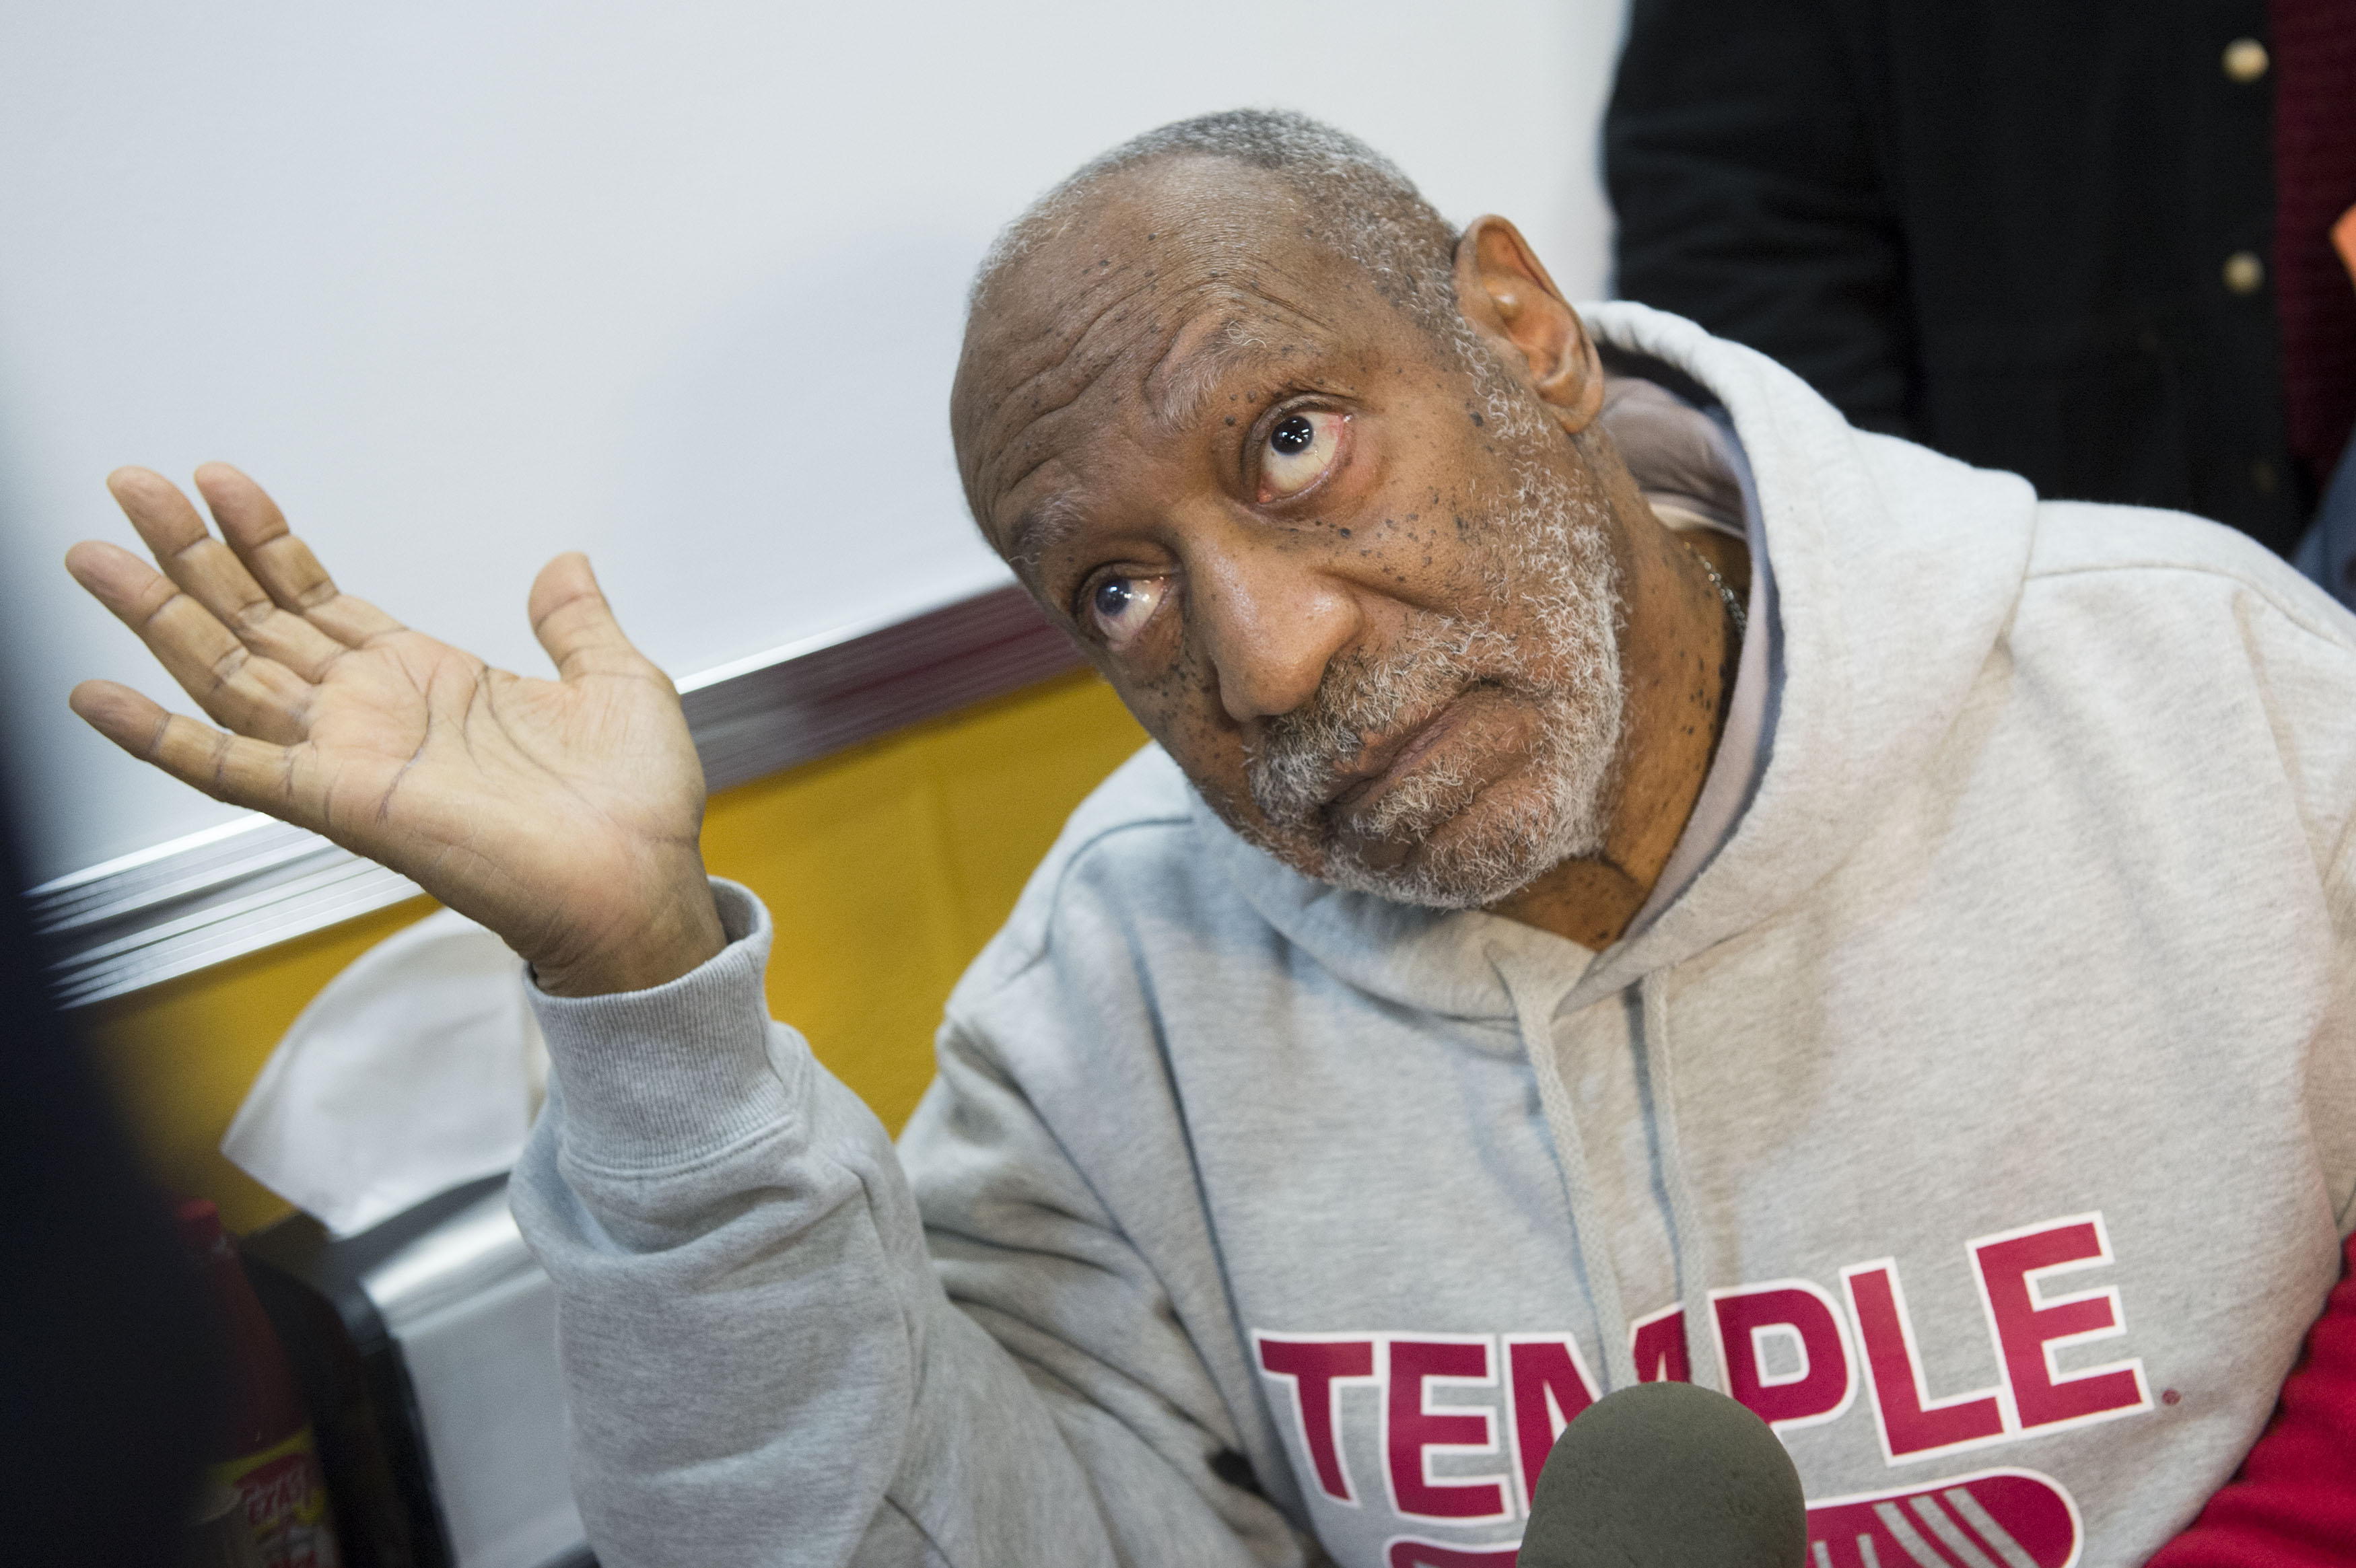 Image #: 27870838    Actor Bill Cosby talks to reporters at the grand opening of Ben's Chili Bowl on March 6, 2014, in Arling